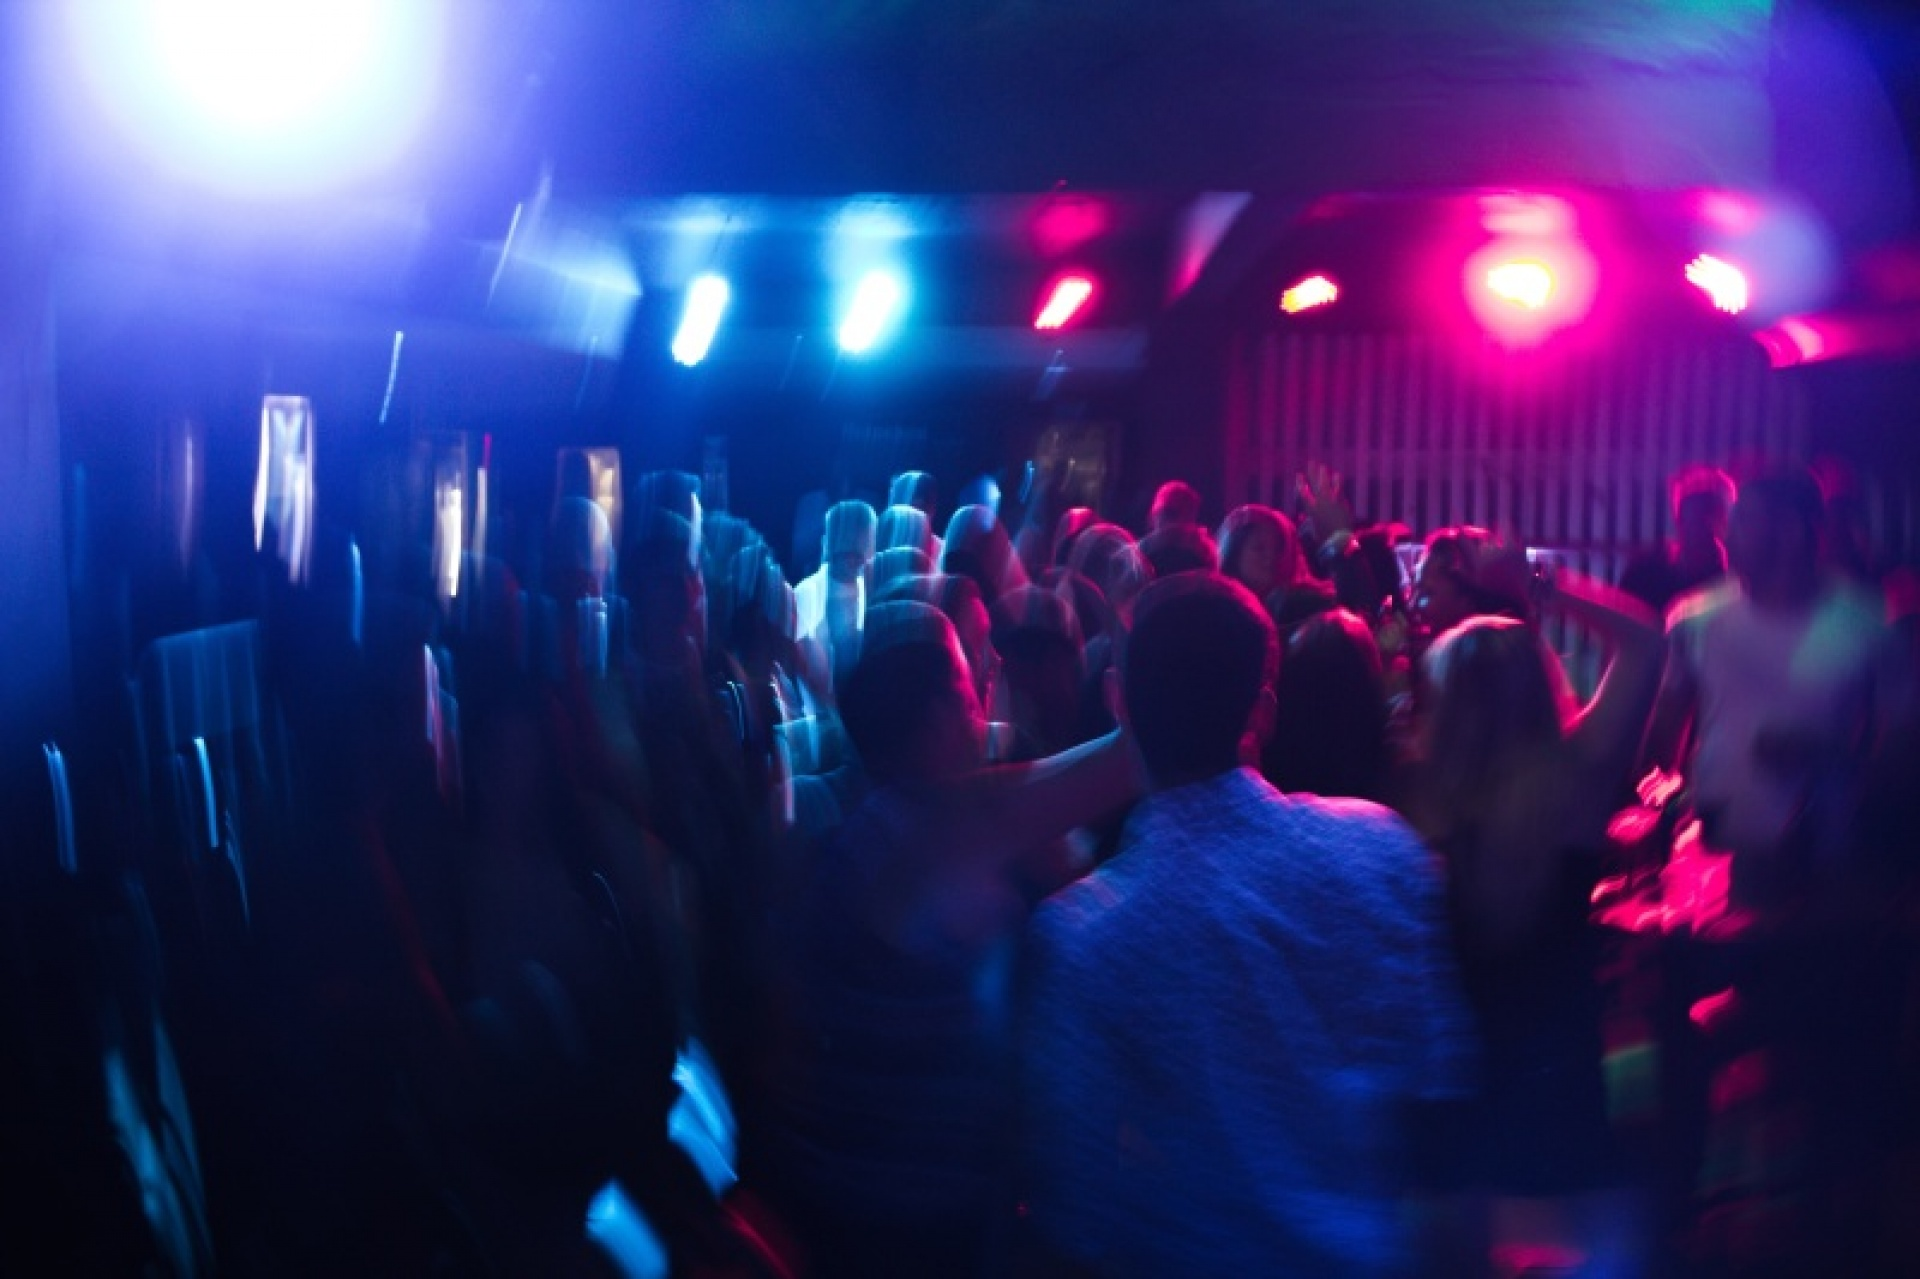 people dancing at a party in a club